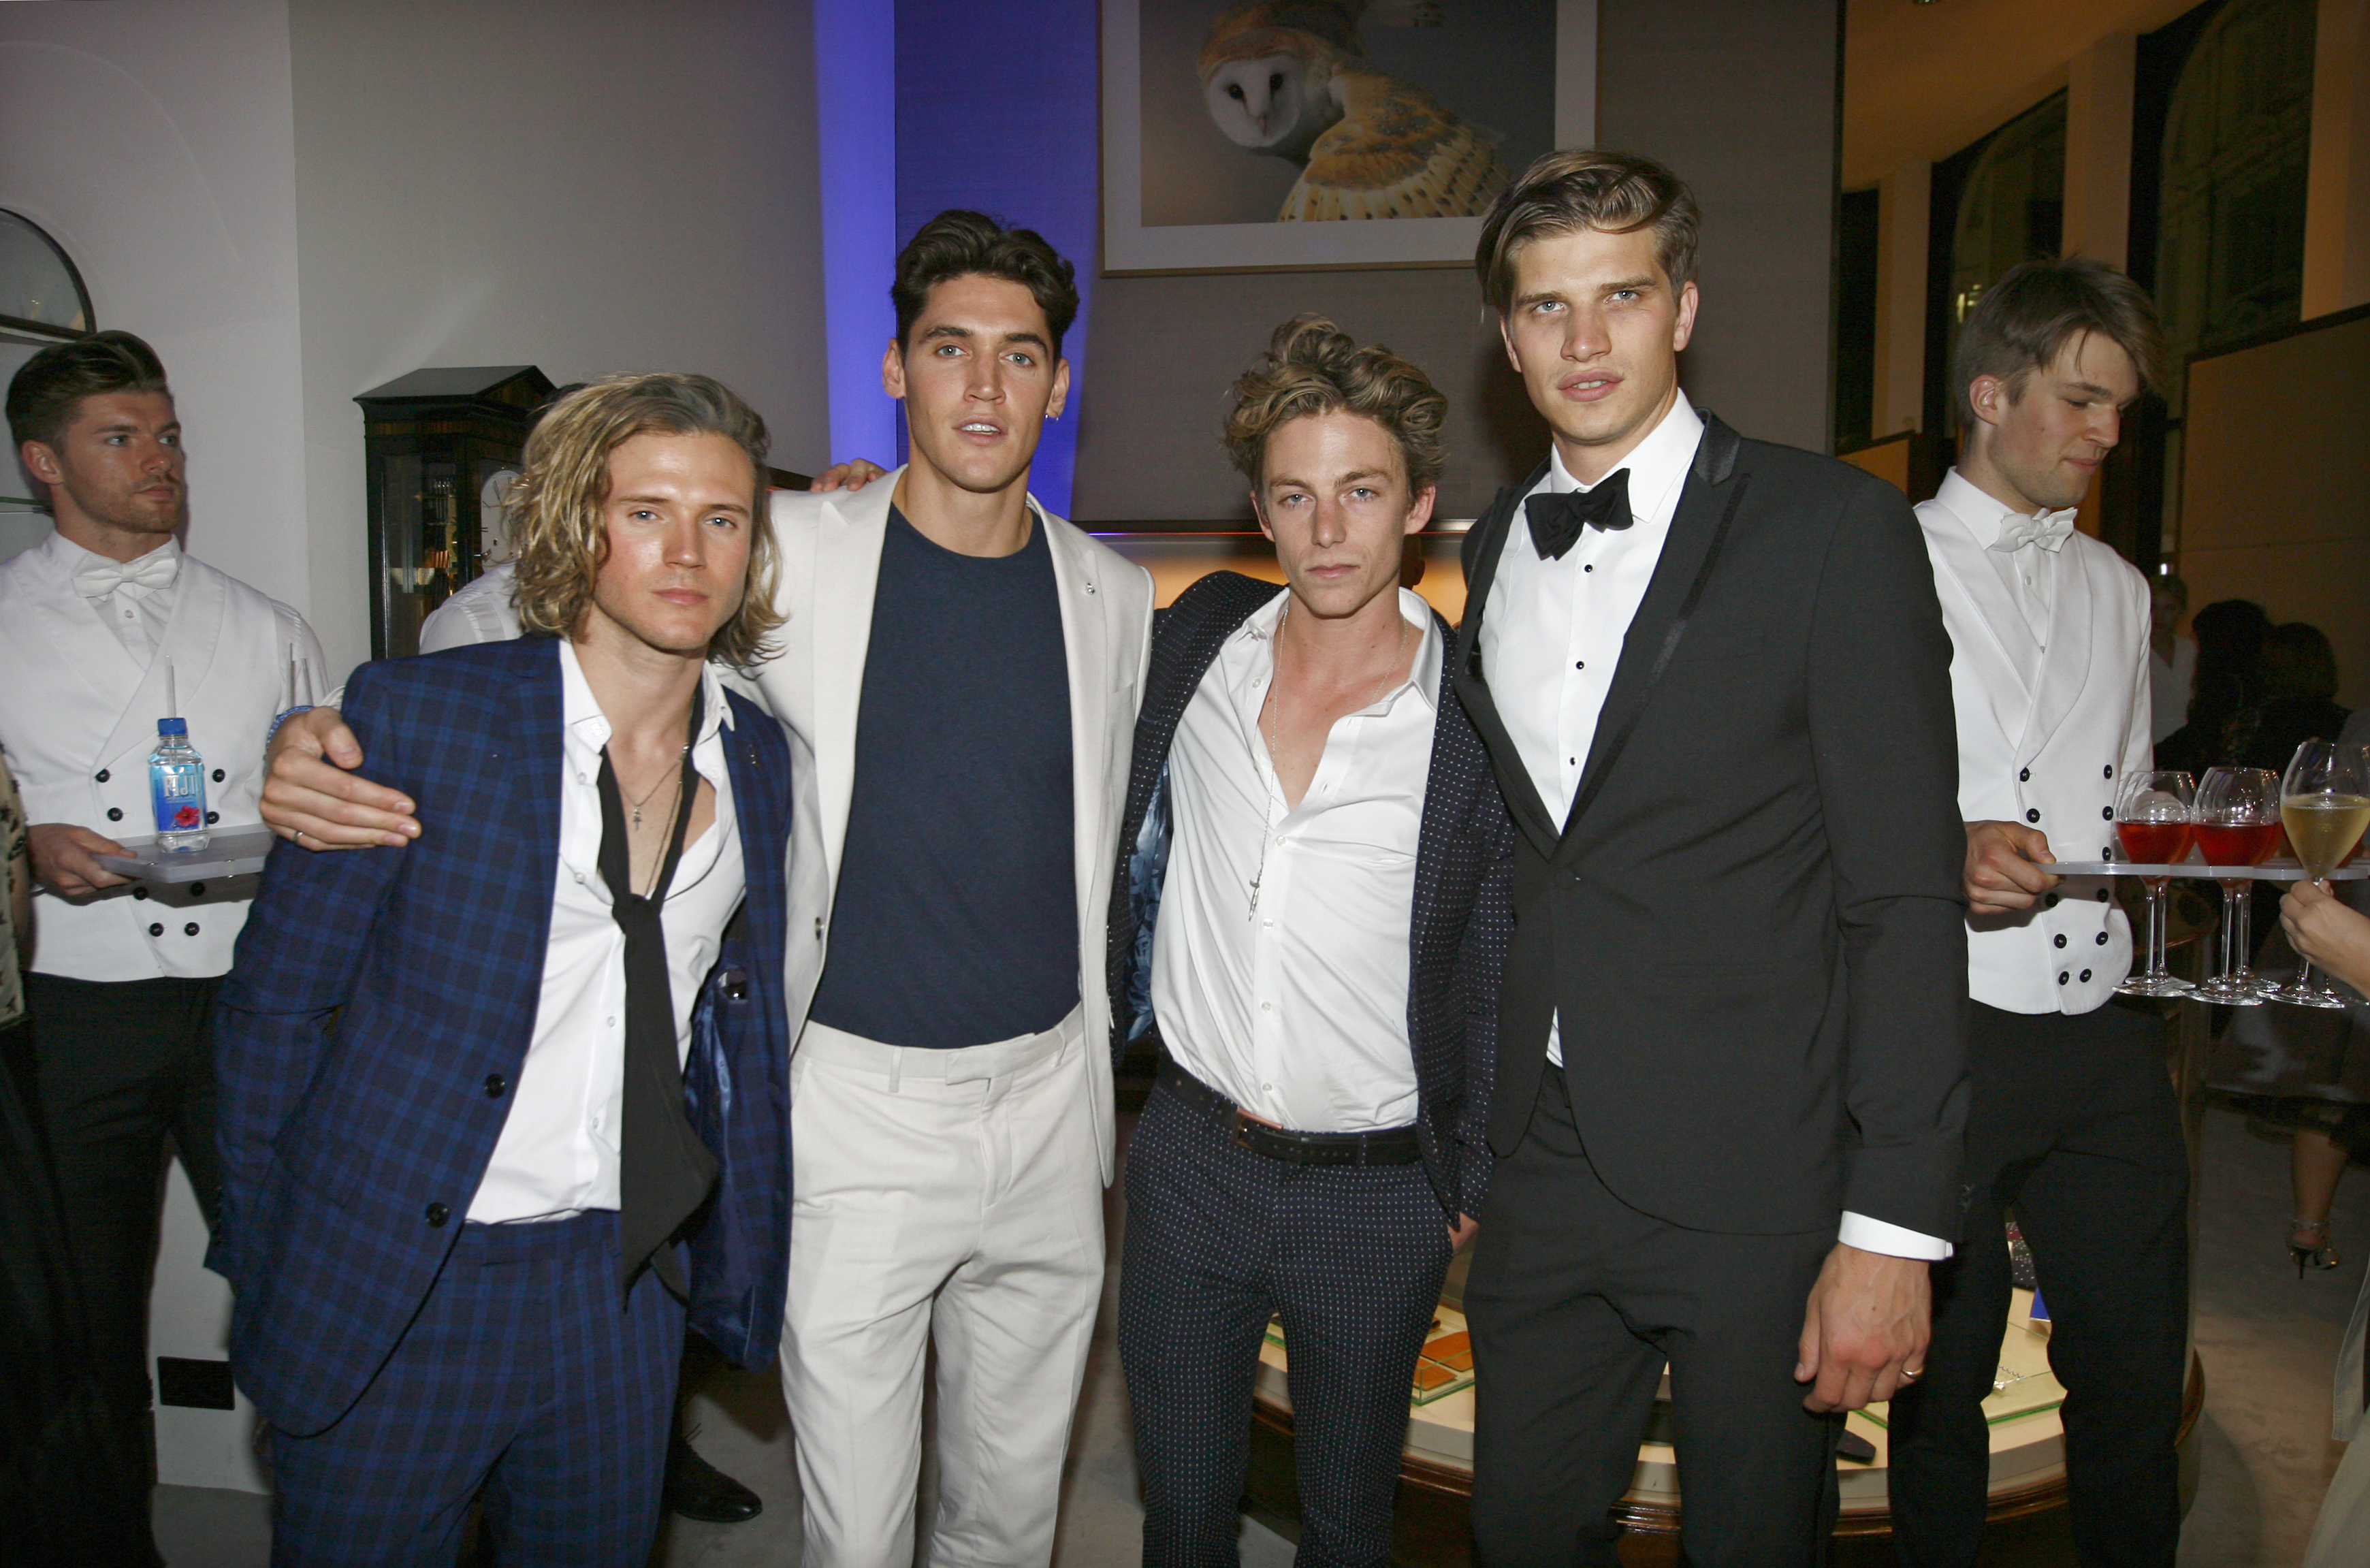 Huntington-Whiteley and Ben Nordberg at the after party for Asprey's One for the Boys Fashion Ball